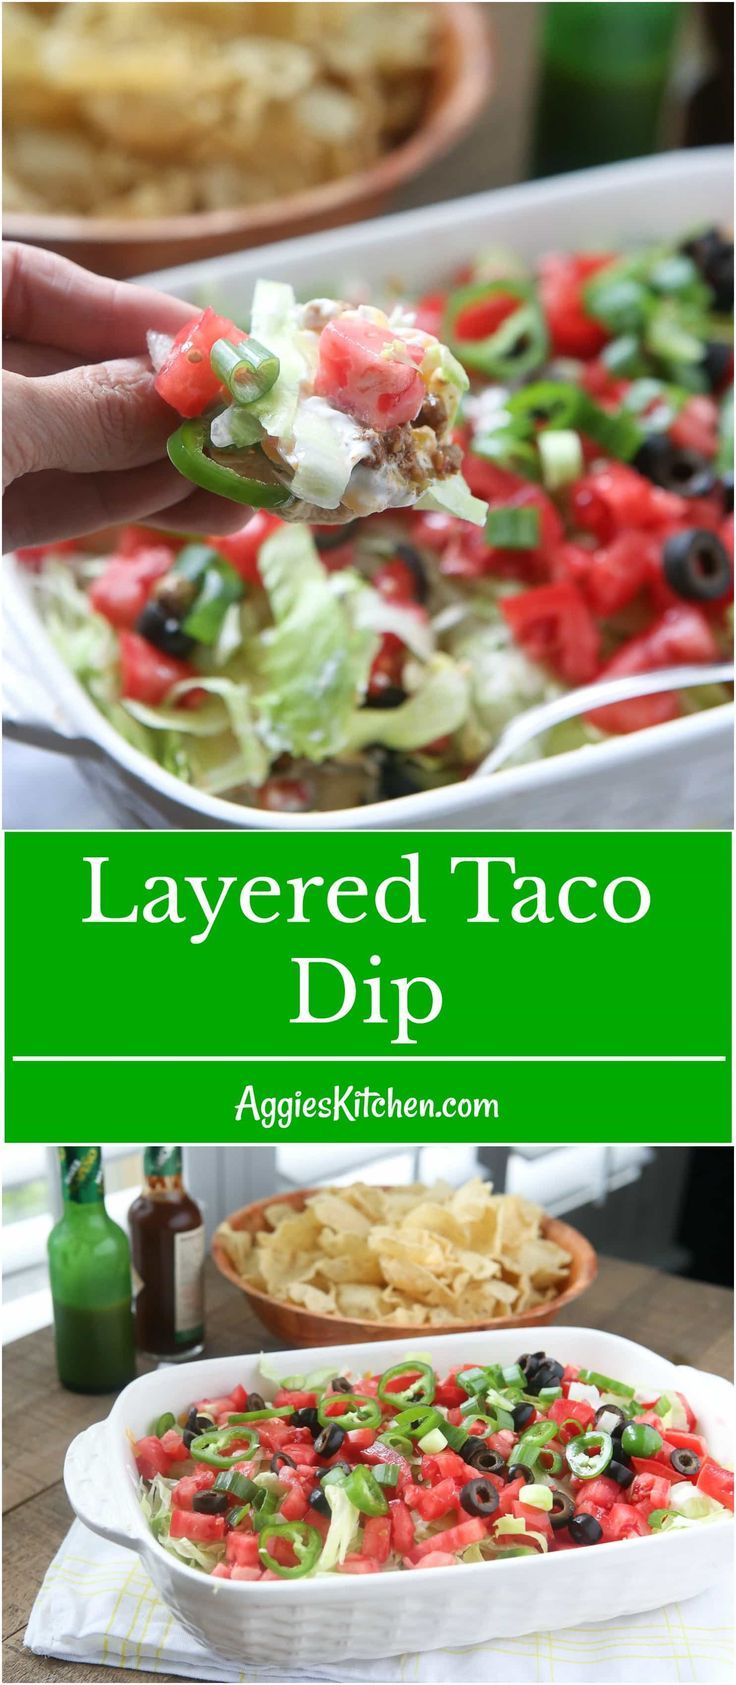 This Layered Taco Dip isfull of all the ingredients that we love in our tacos, but in dip form. Great to serve while entertaining family and friends! #UndeniablyDairy @DairyGood #ad via @aggieskitchen